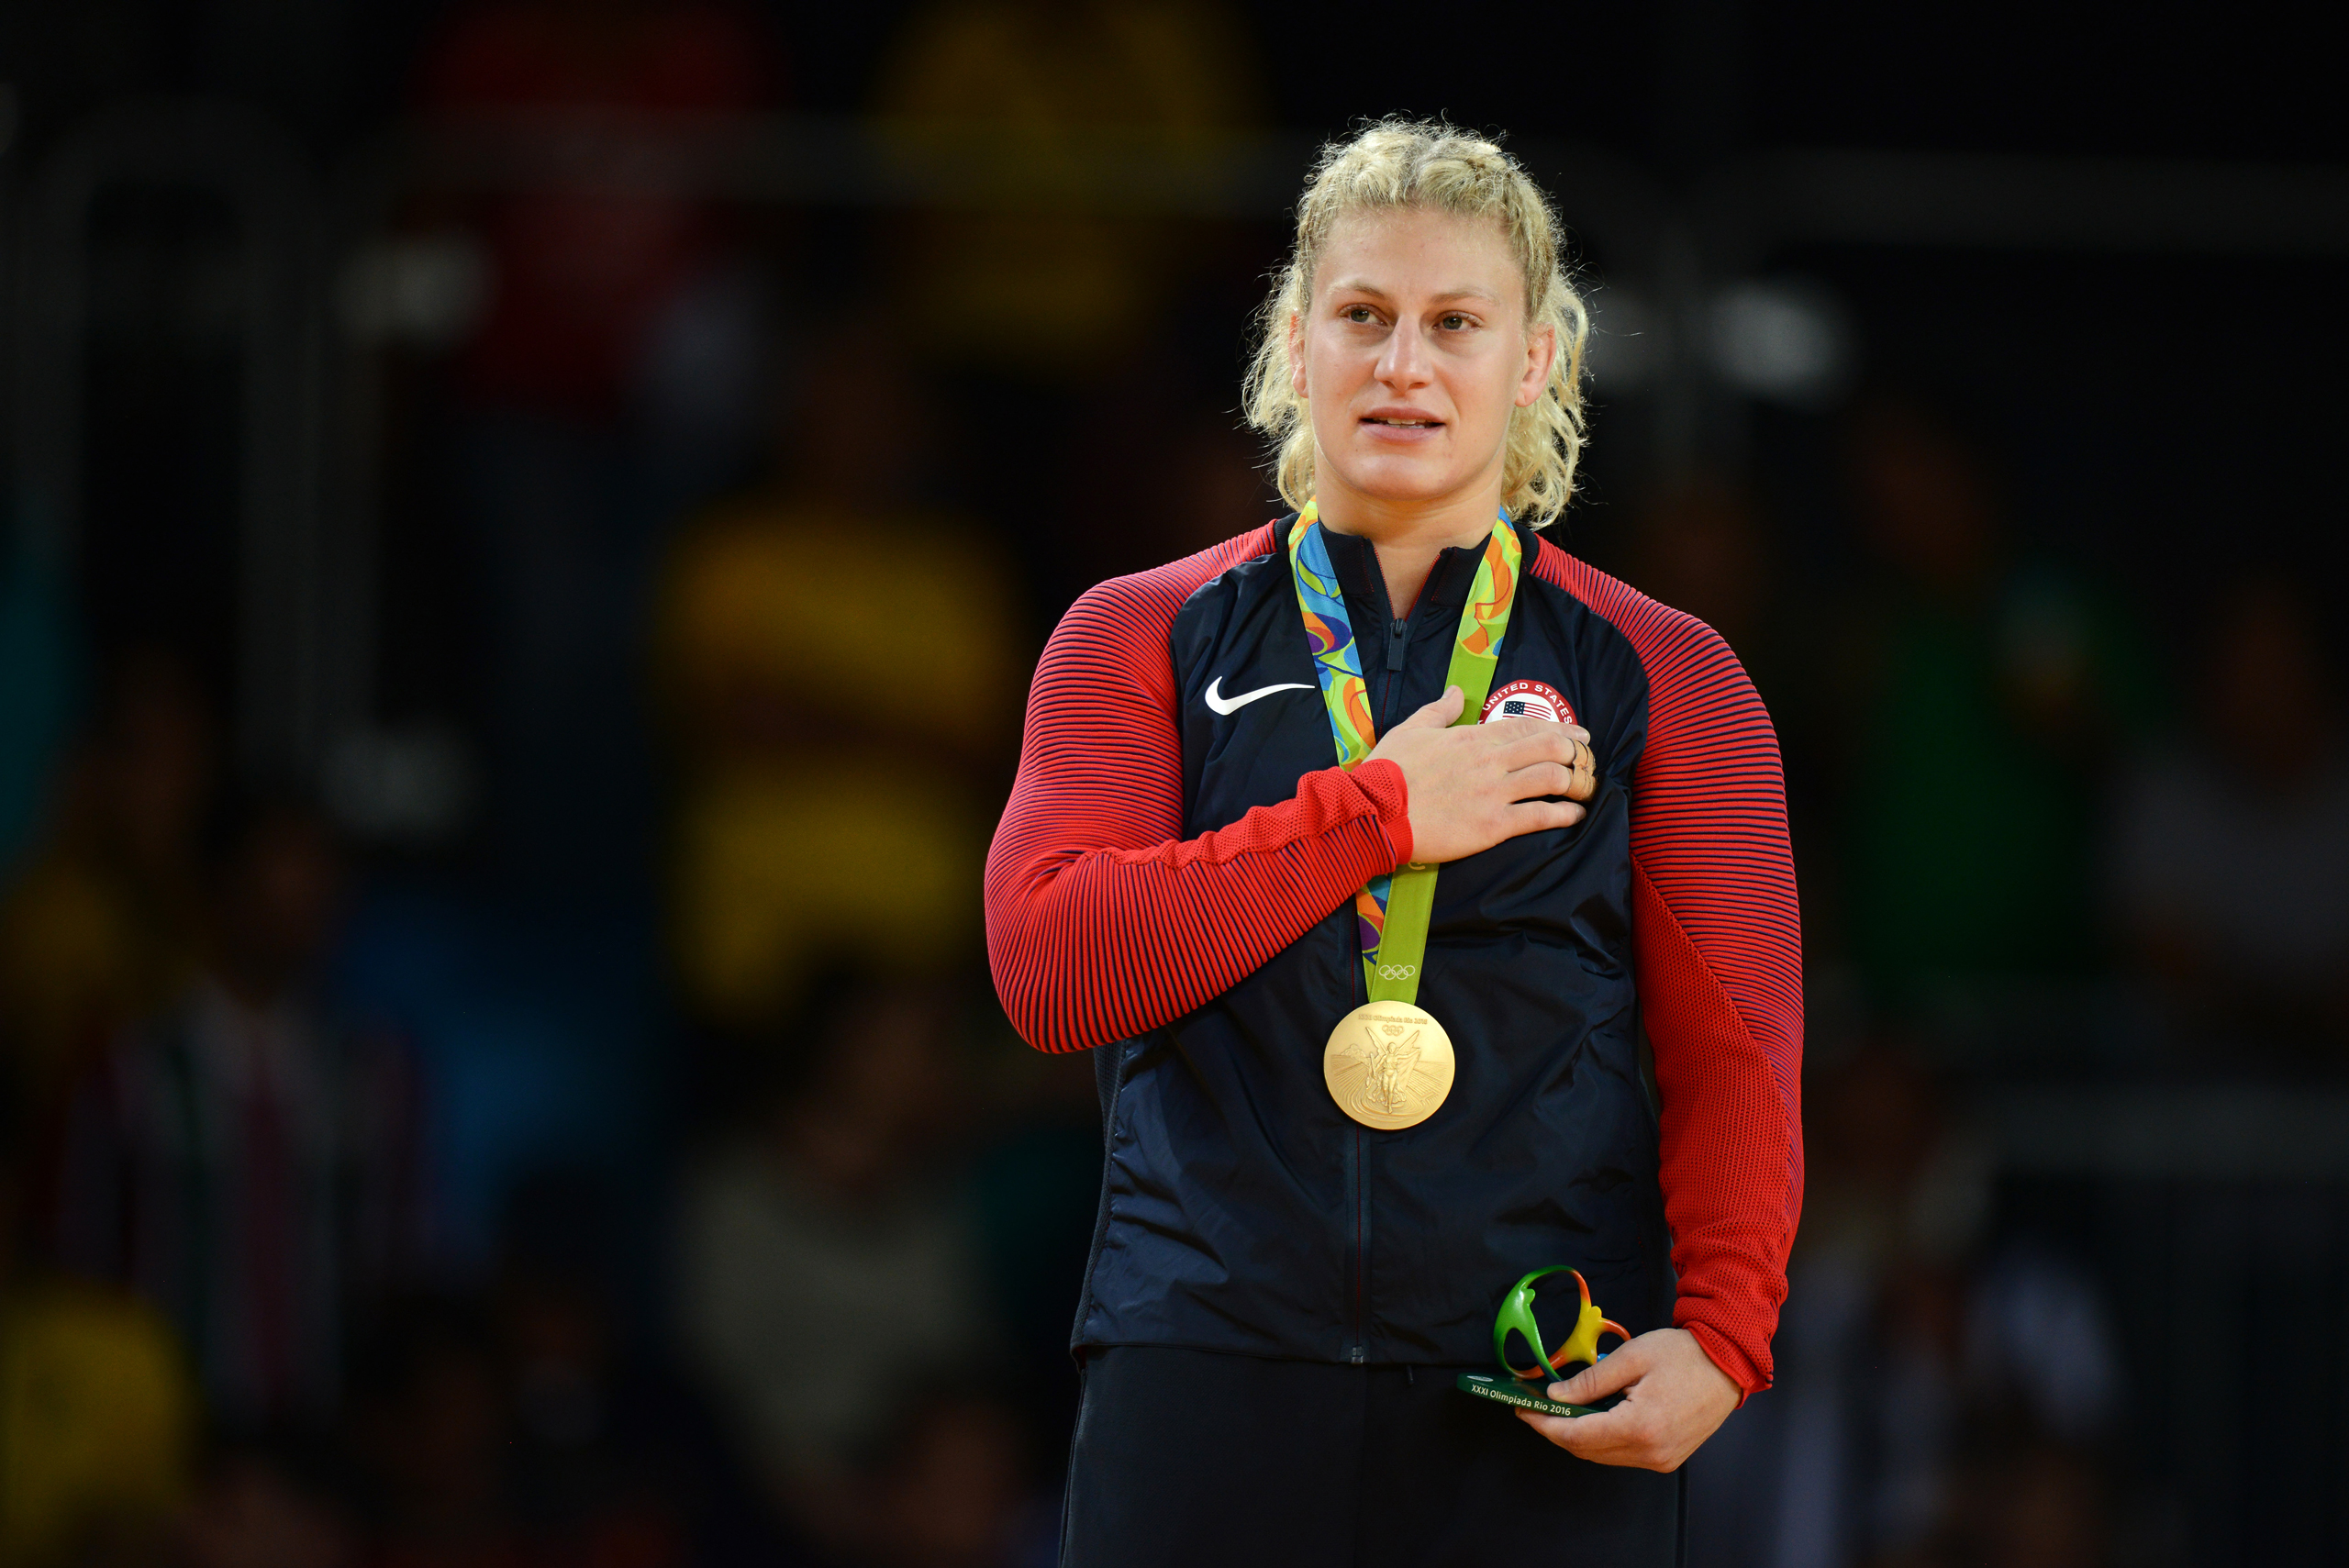 Gold medal Kayla Harrison at the Judo women's -78kgs held at Carioca Arena 2 during Day 6 of the 2016 Rio on August 11, 2016.